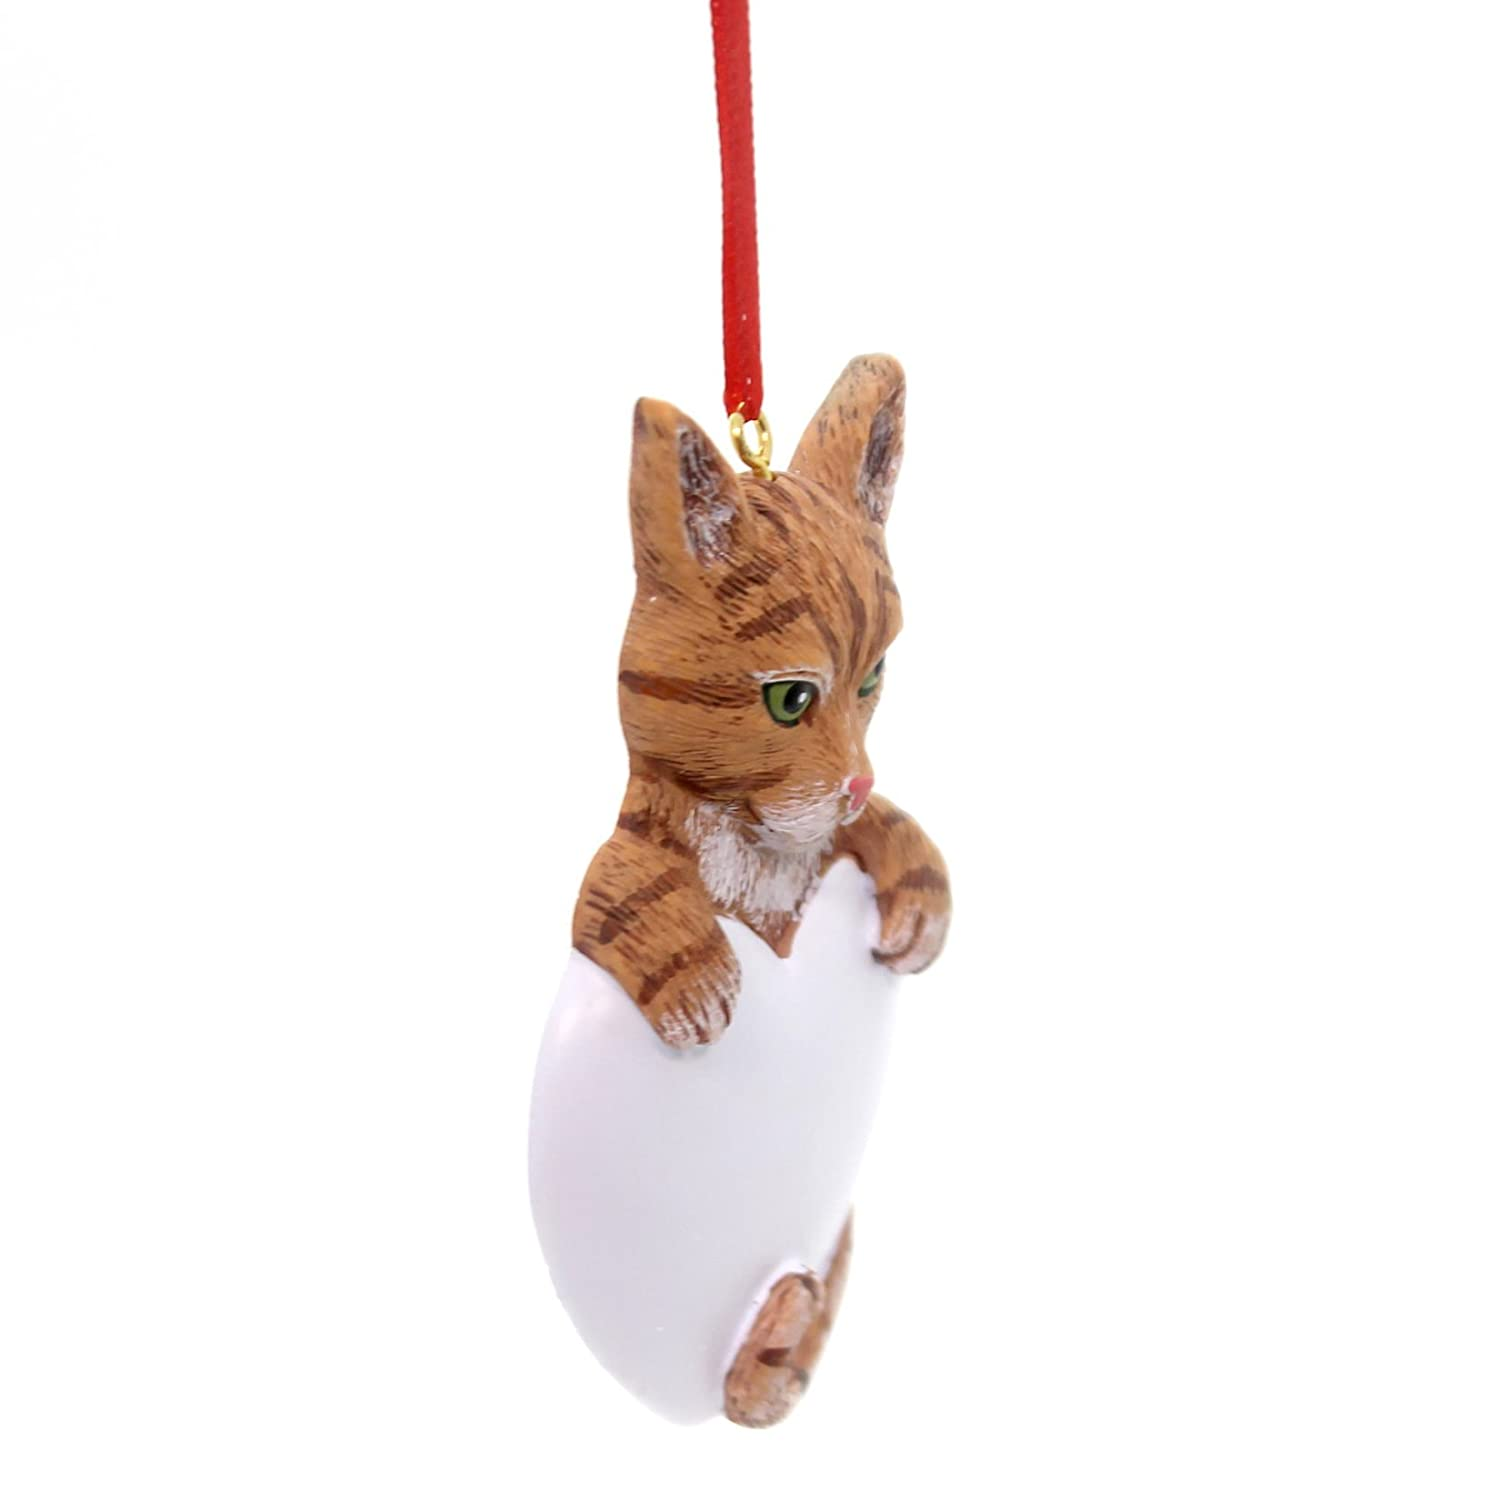 Tabby cat ornament - Amazon Com 8278 Tabby Cat Orange Hand Personalized Christmas Ornament Home Kitchen